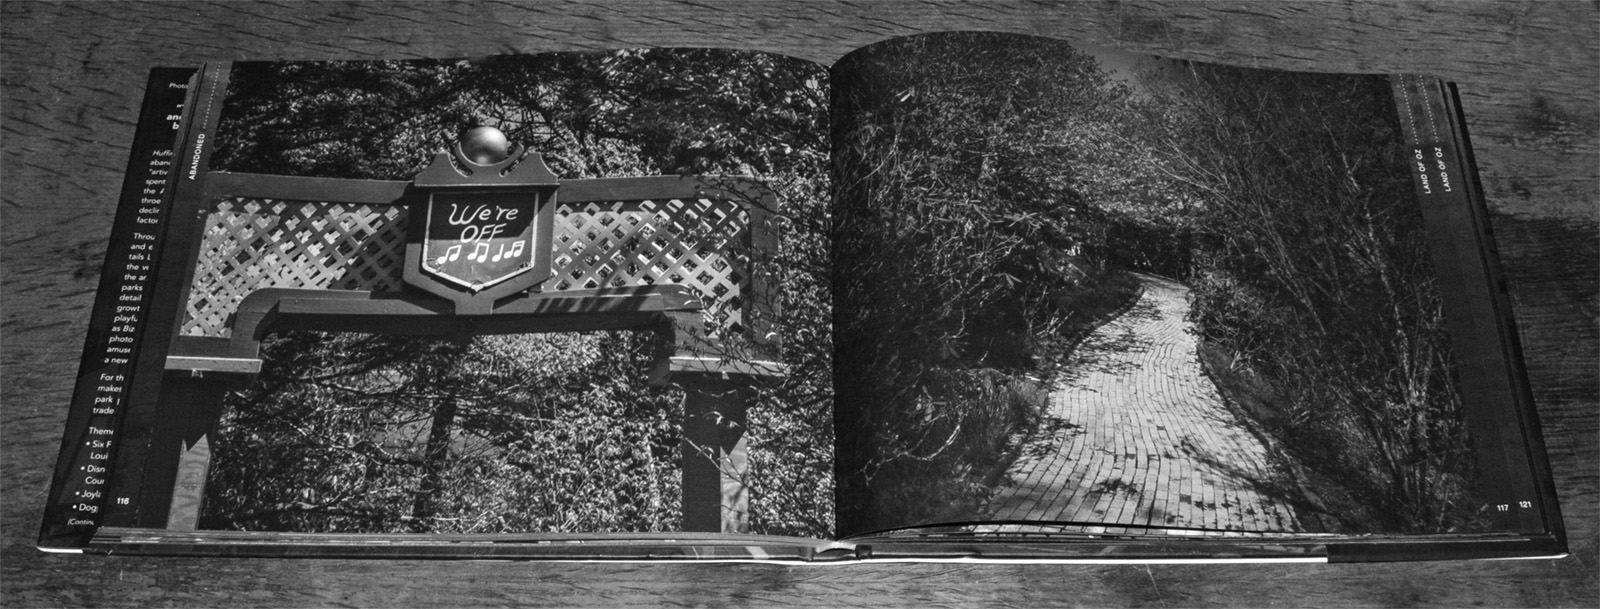 Seph Lawless Abandoned Theme Parks Book 01 A Year In The Country